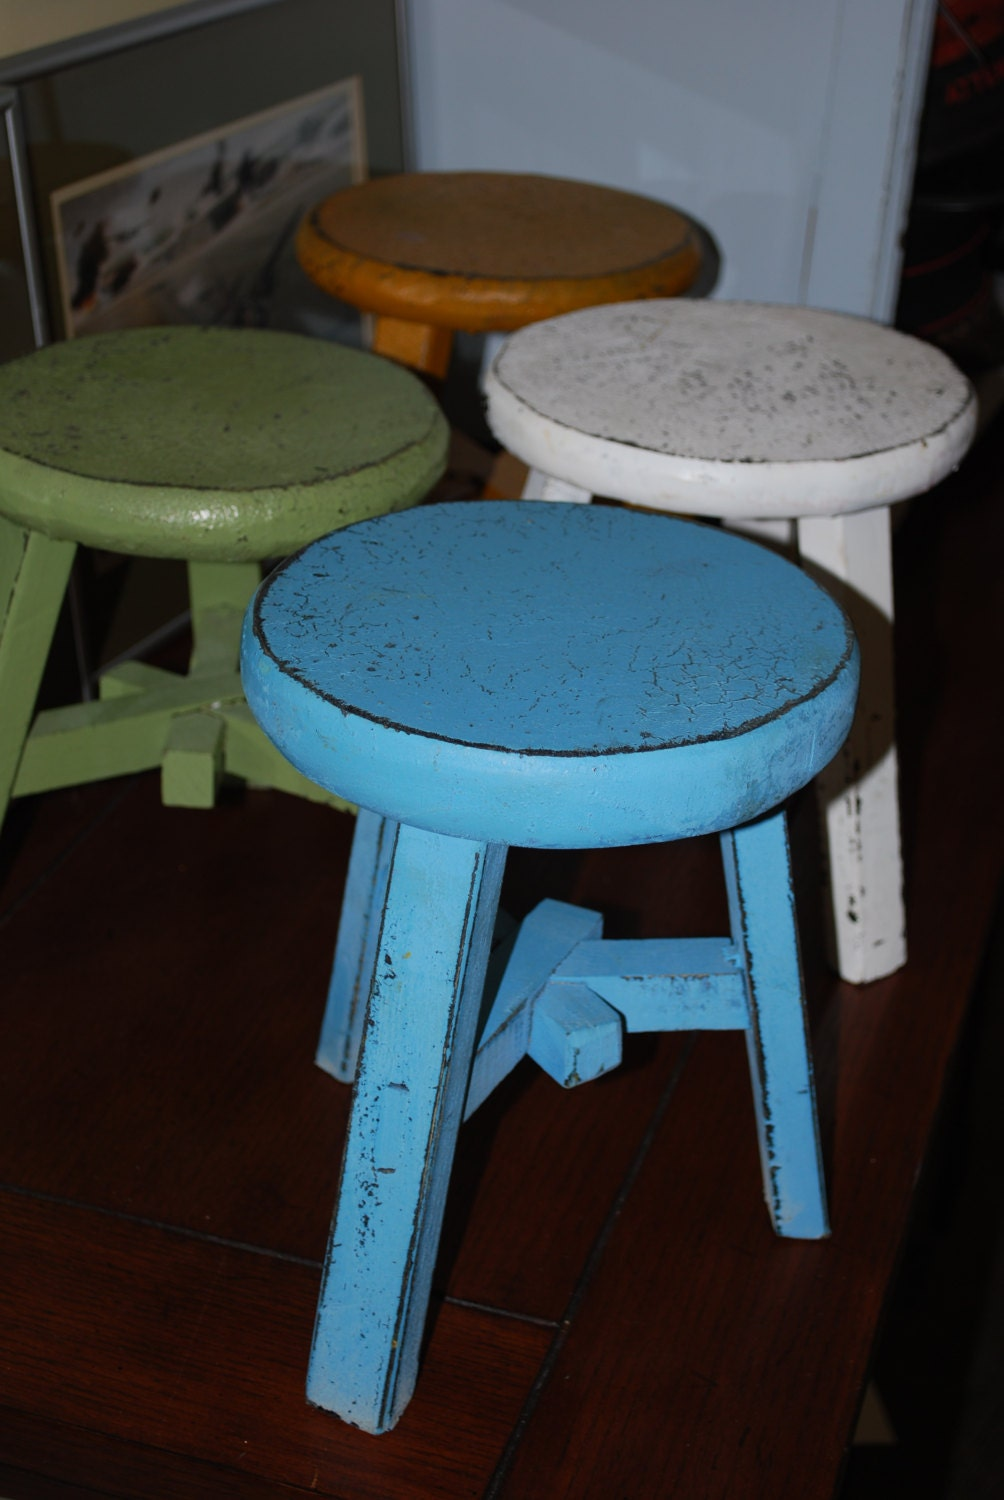 Vintage Small Wood Foot Stool : ilfullxfull4169651419csy from www.etsy.com size 1004 x 1500 jpeg 231kB